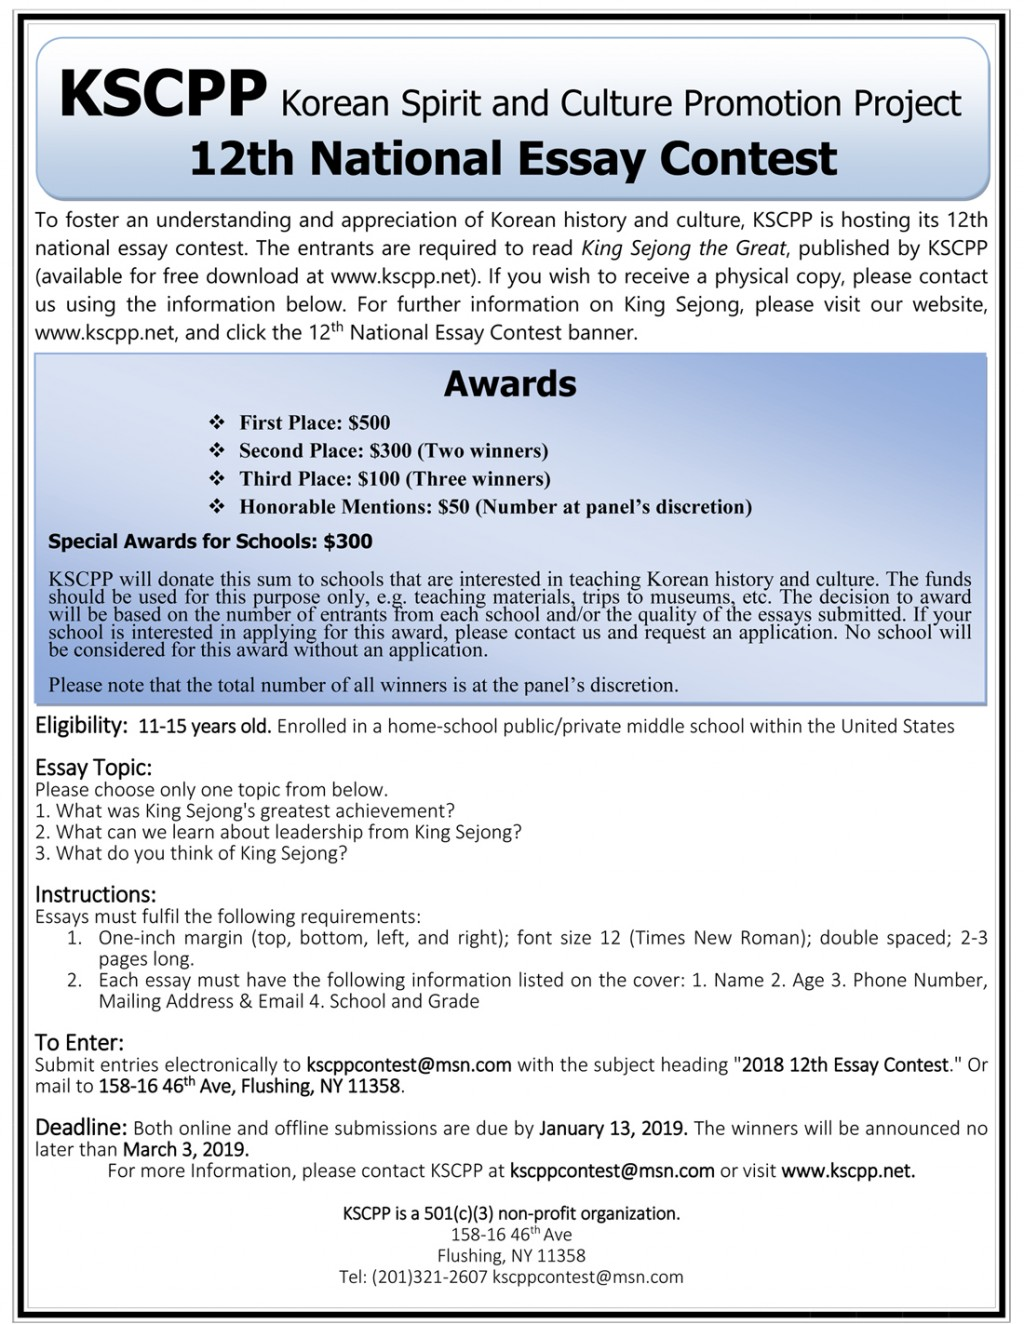 005 Essay Example Contest Amazing Writing High School Contests For Seniors 2018 Large